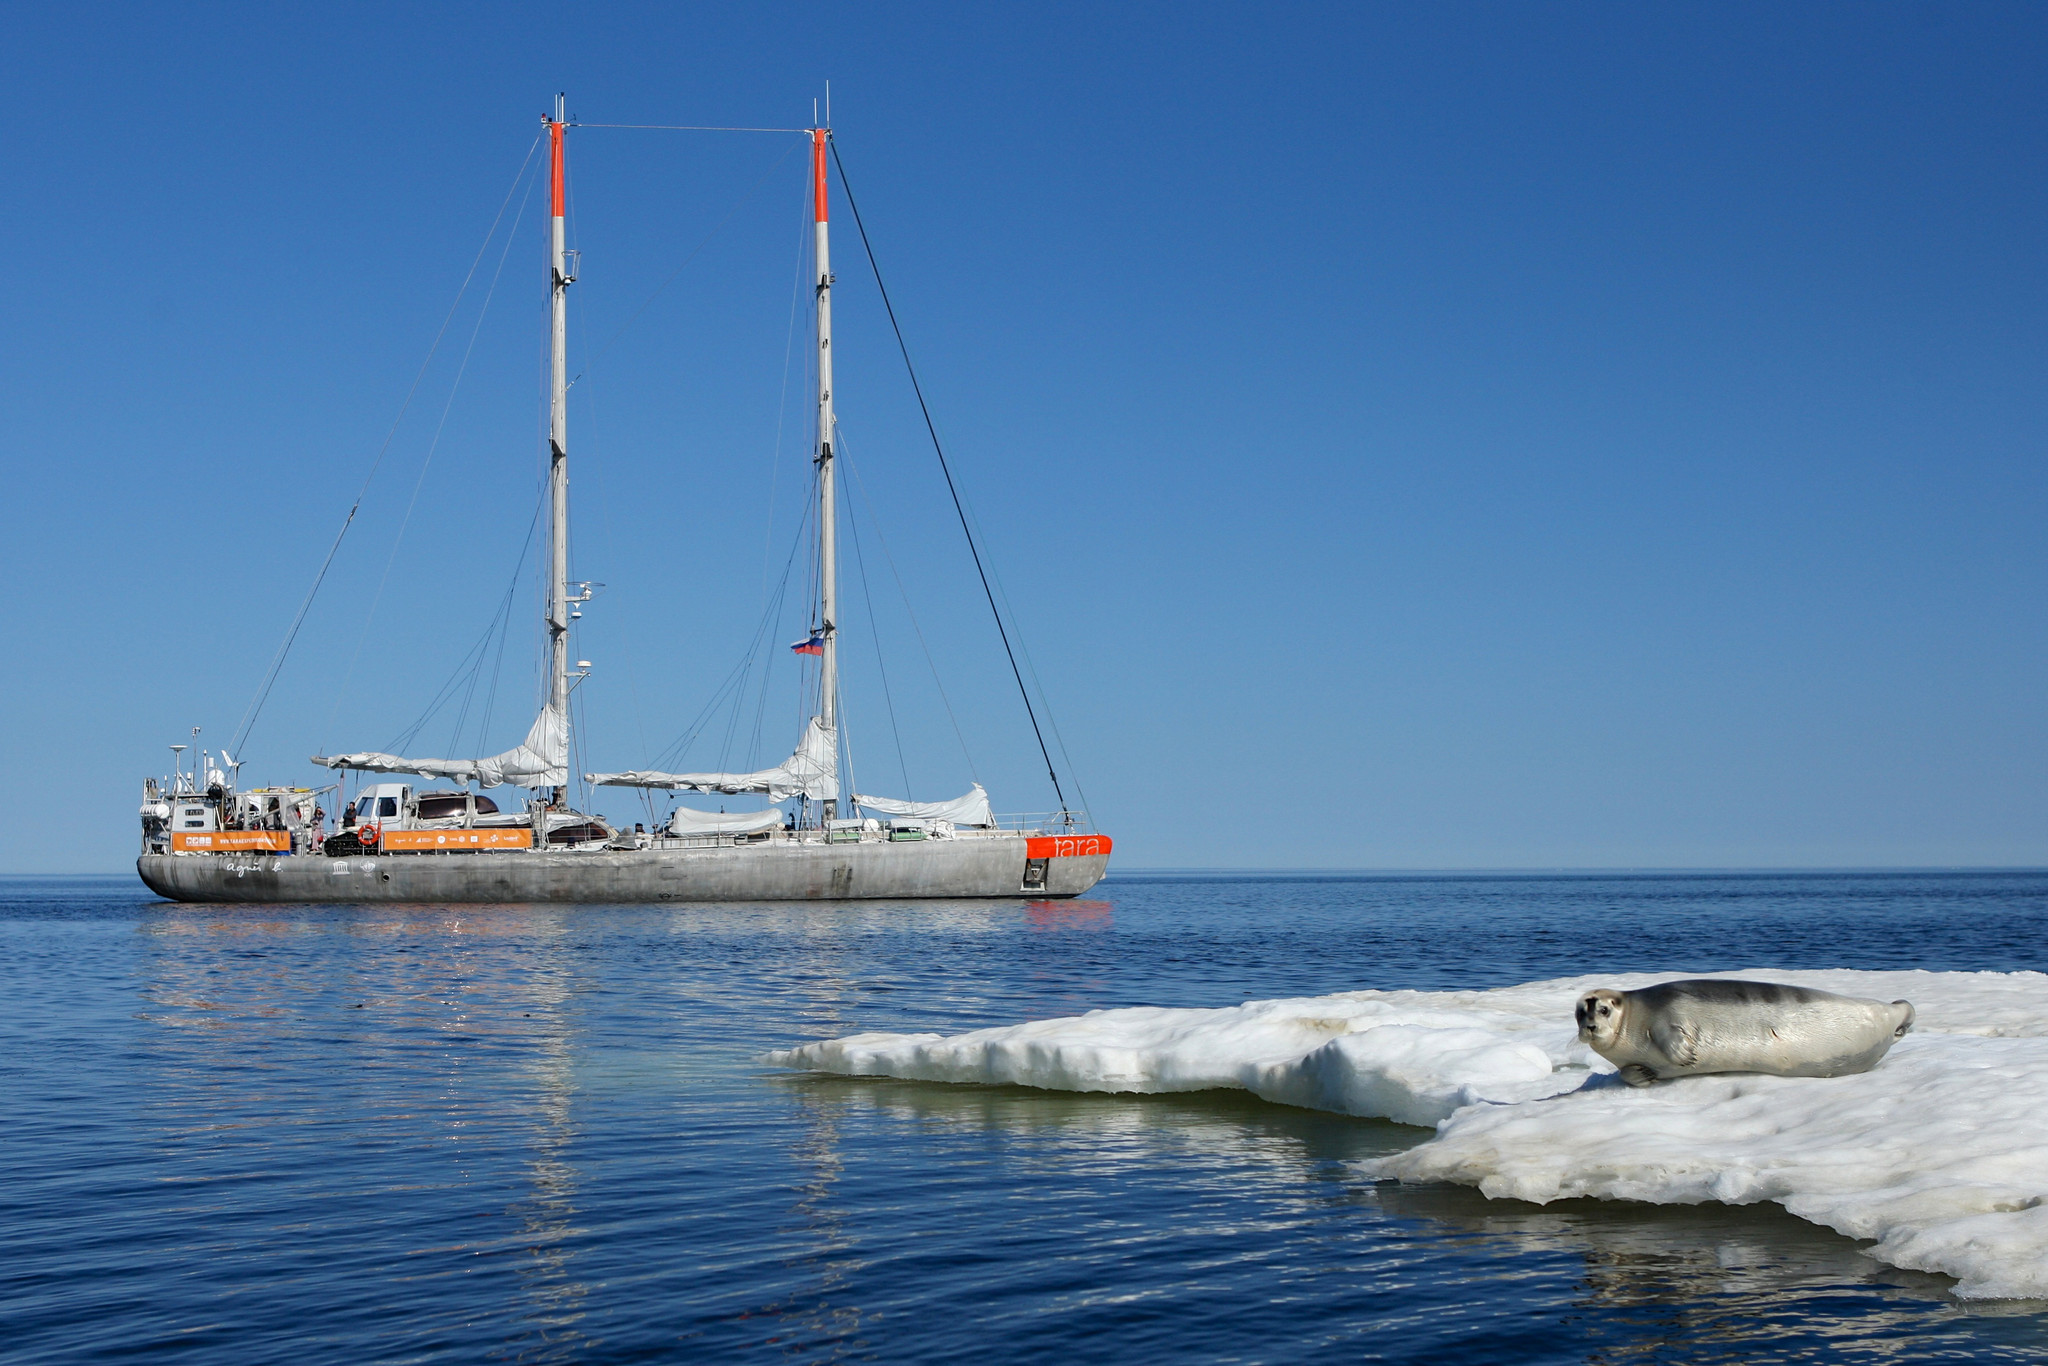 A seal lies on an iceberg in front of the research vessel Tara.